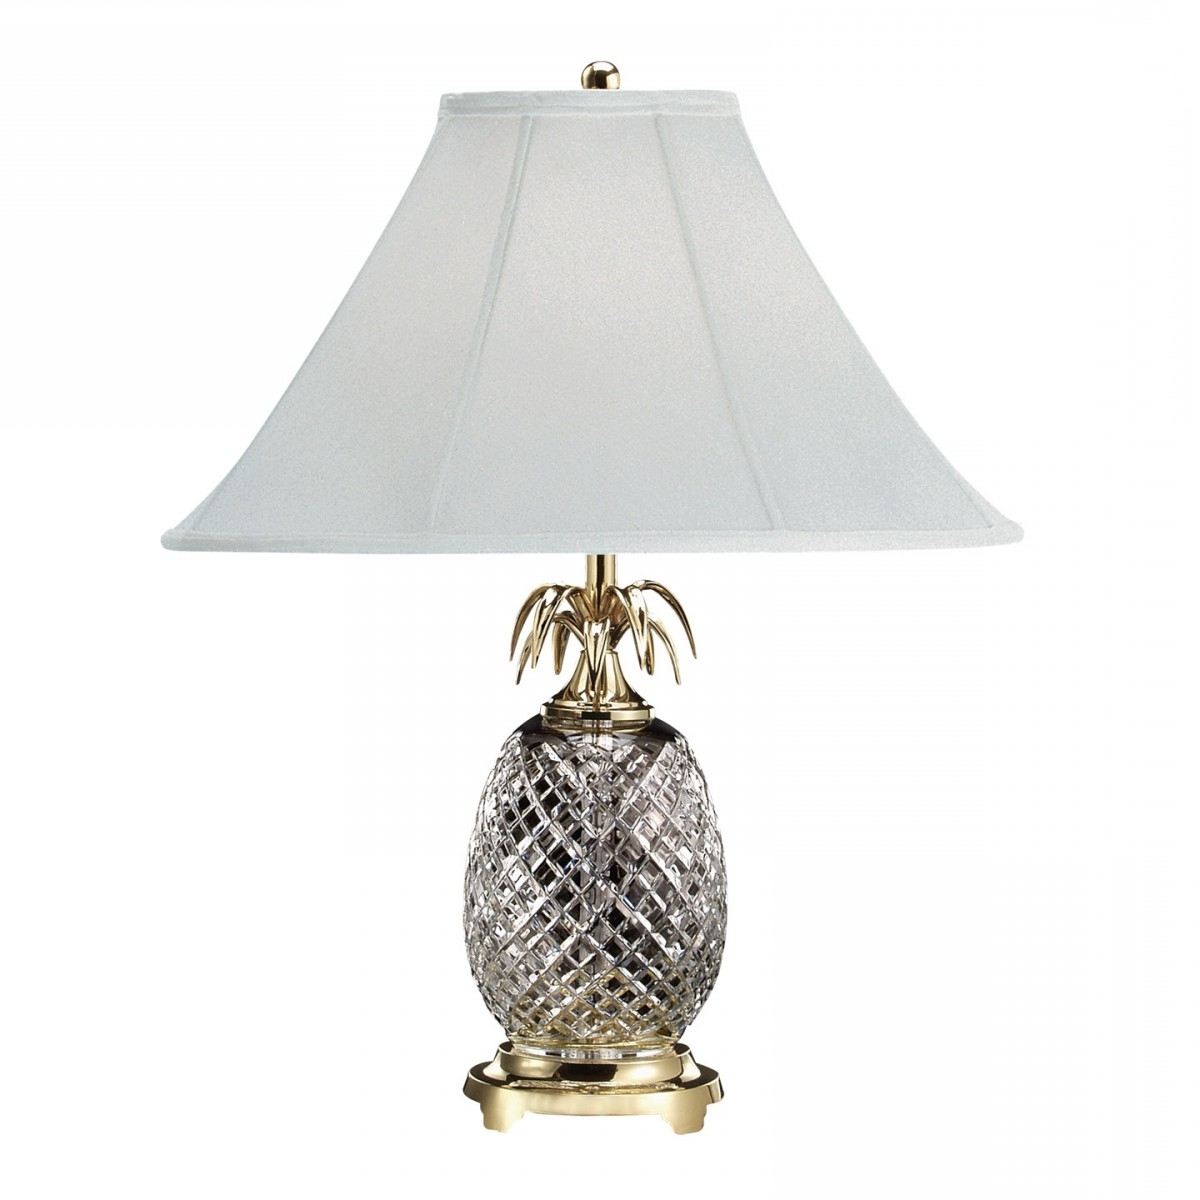 Best And Newest Accessories: Endearing Image Of Home Lighting Design And Decoration Pertaining To Elegant Living Room Table Lamps (View 3 of 15)